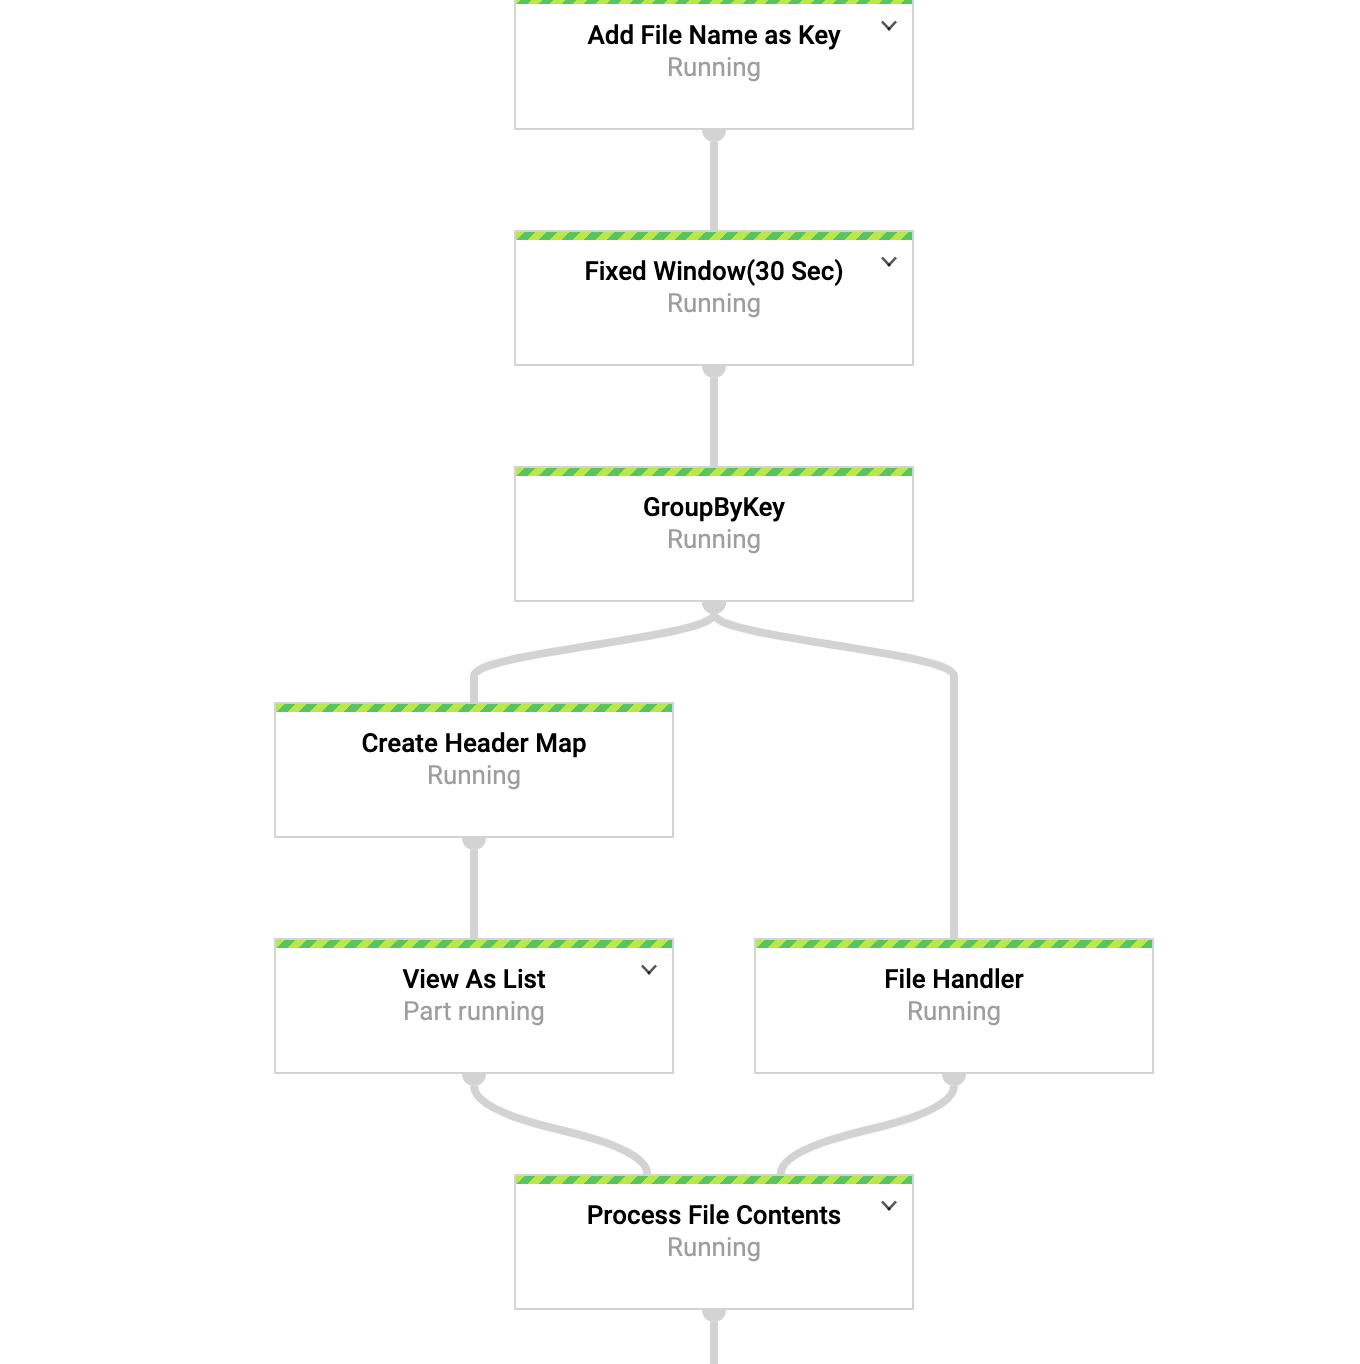 First half of the job details workflow.